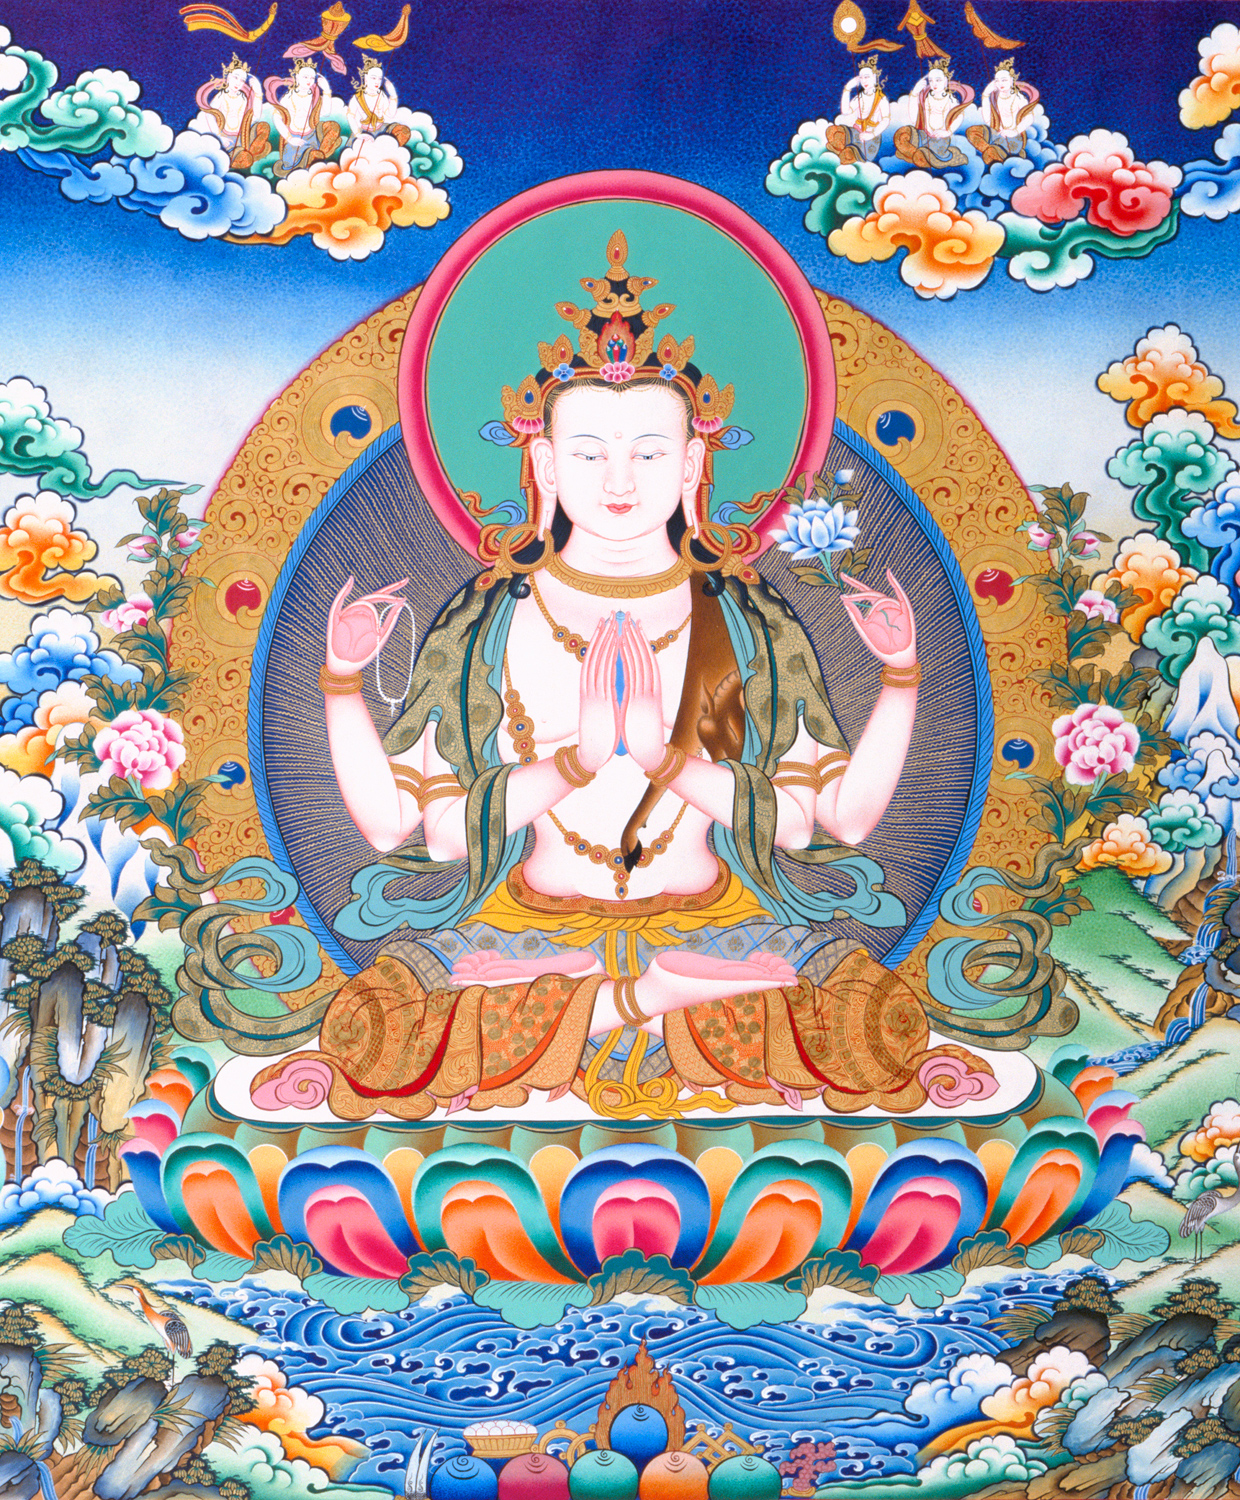 Meaning of the Praise and Mantra of Medicine Buddha